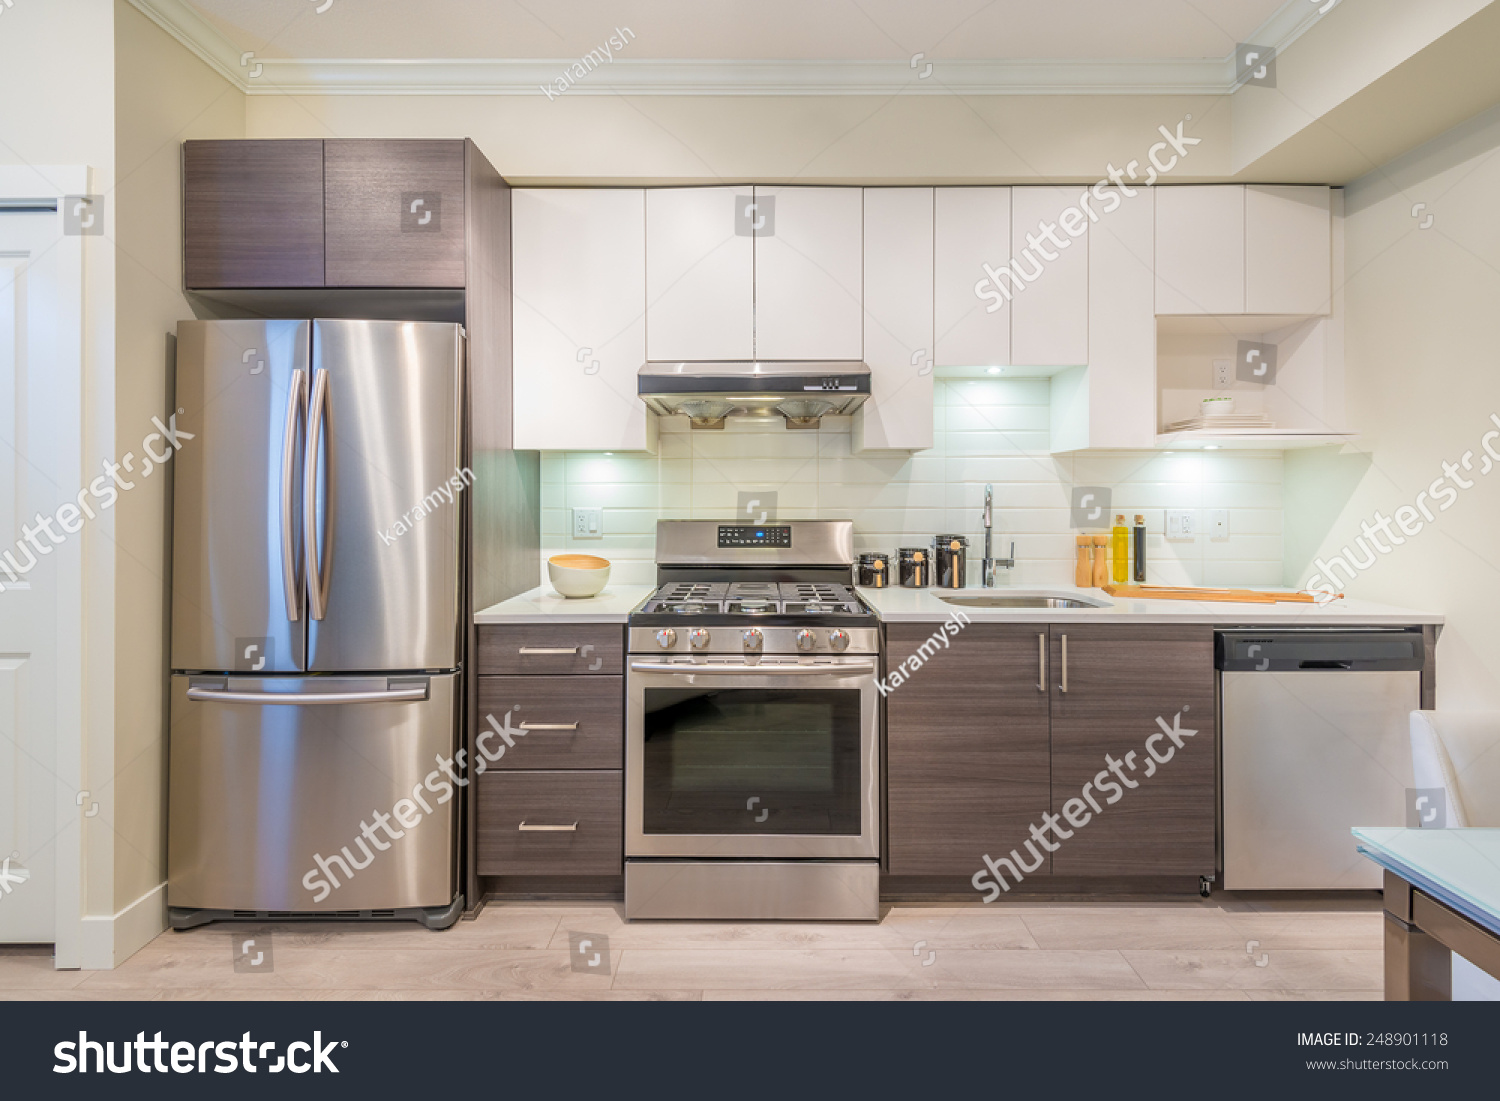 Modern Bright Clean Kitchen Interior Stainless Stock Photo 248901118 Shutterstock